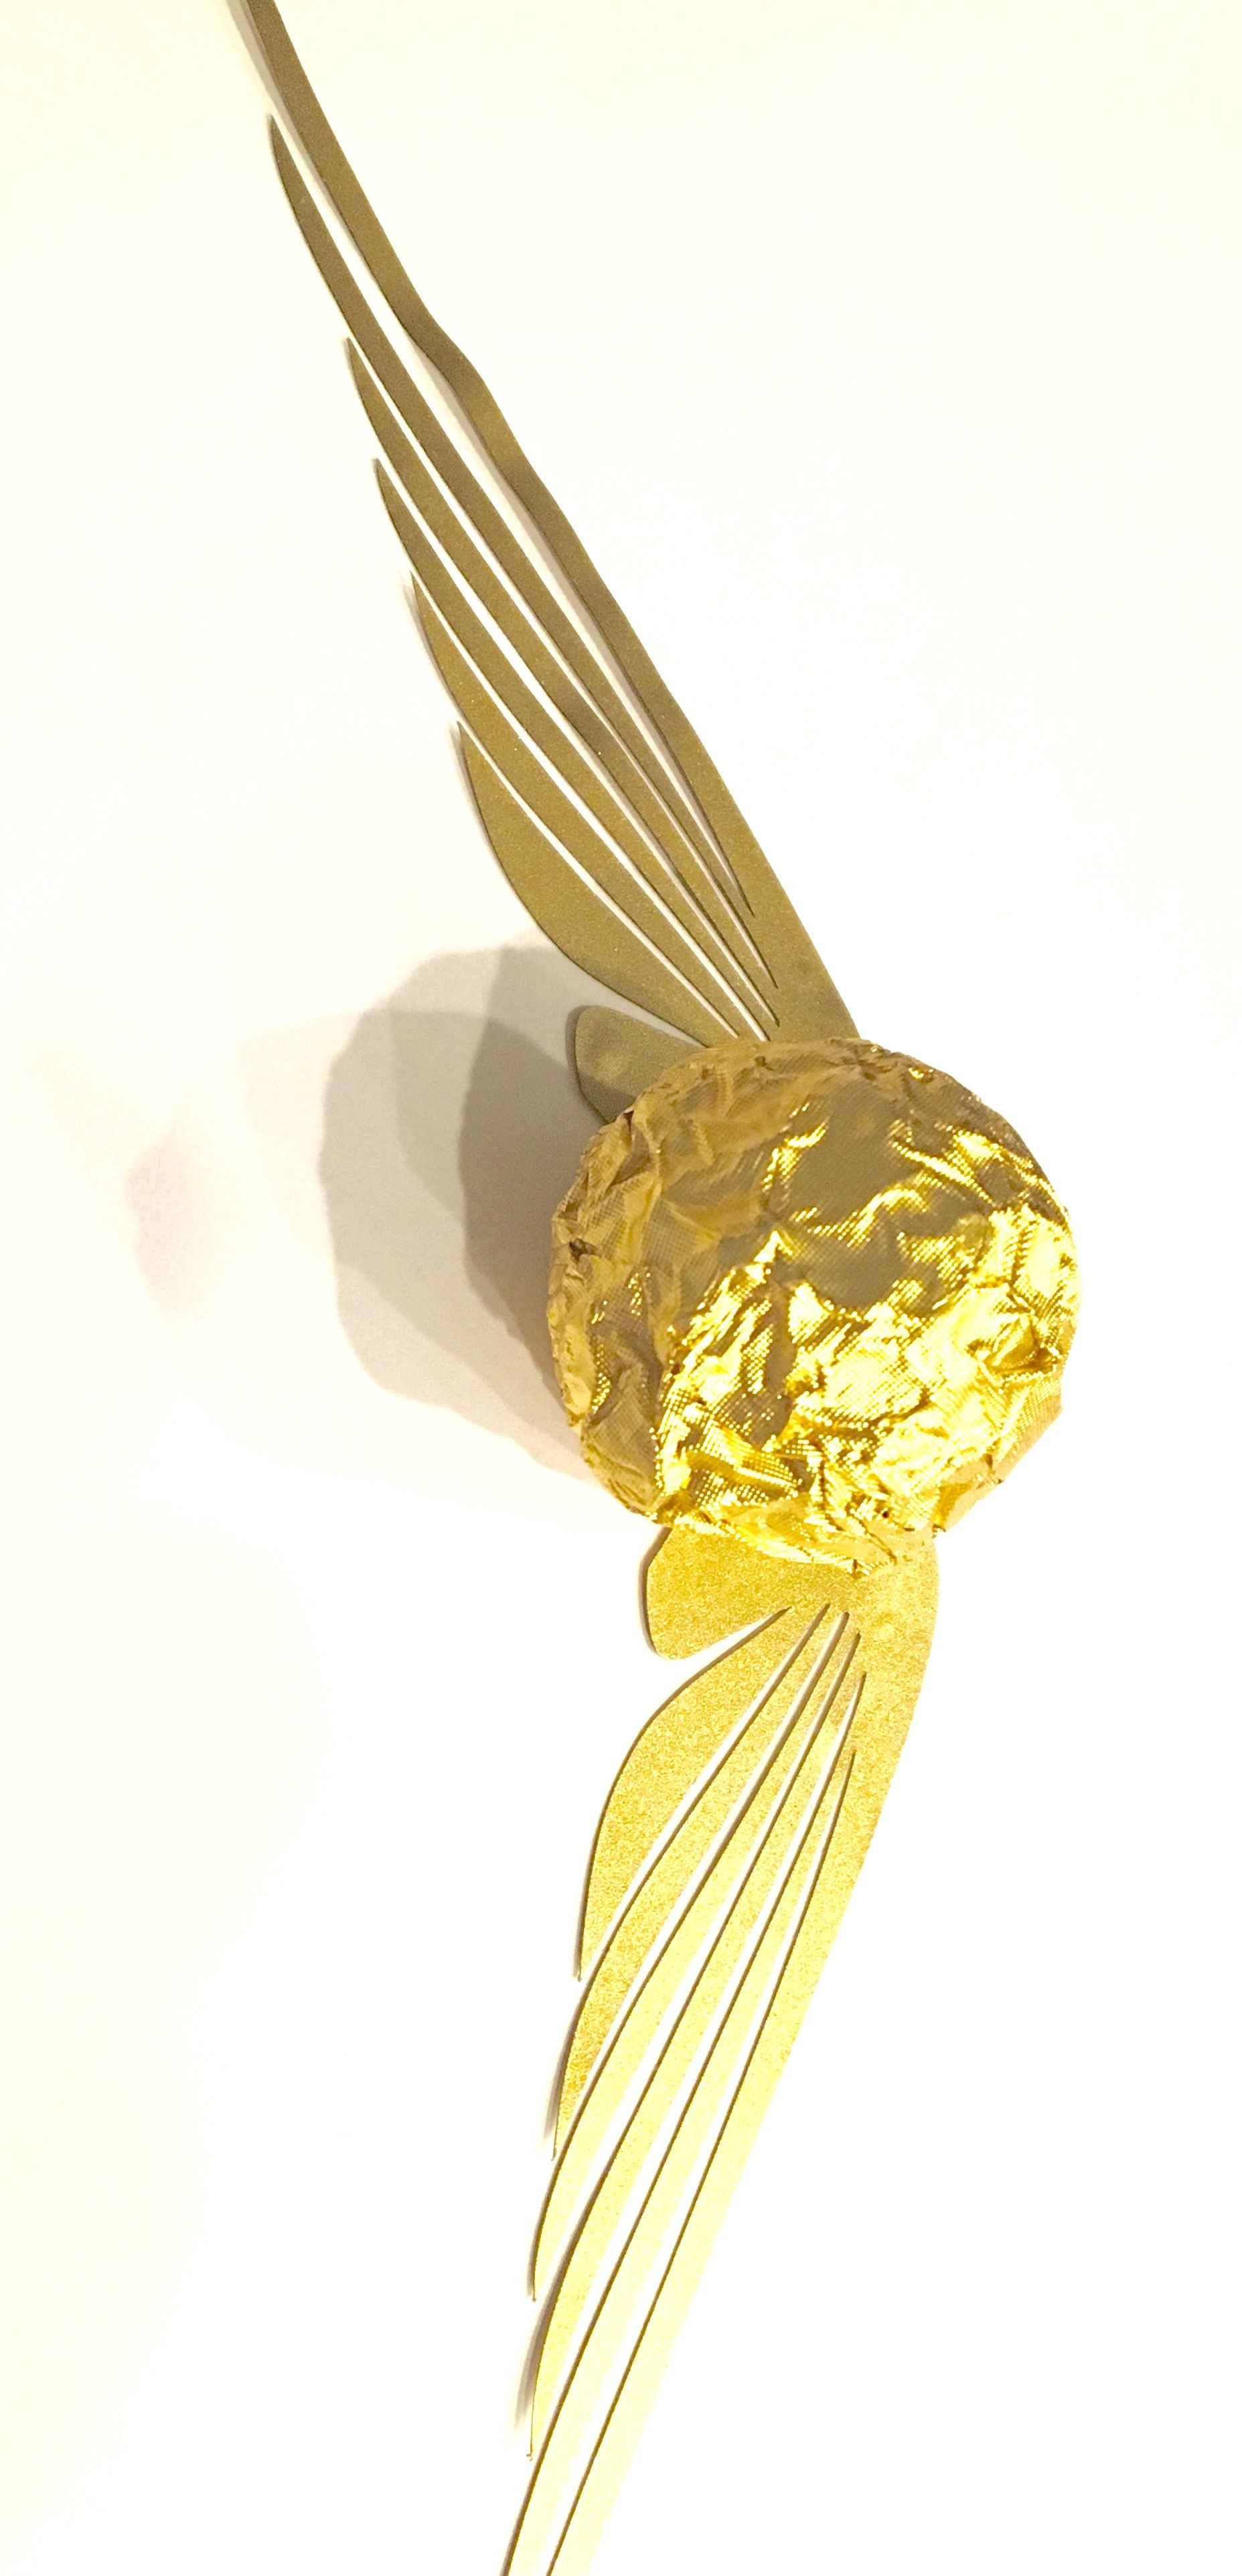 Golden Snitch party favor. Made from Ferrero Rocher chocolate balls ...